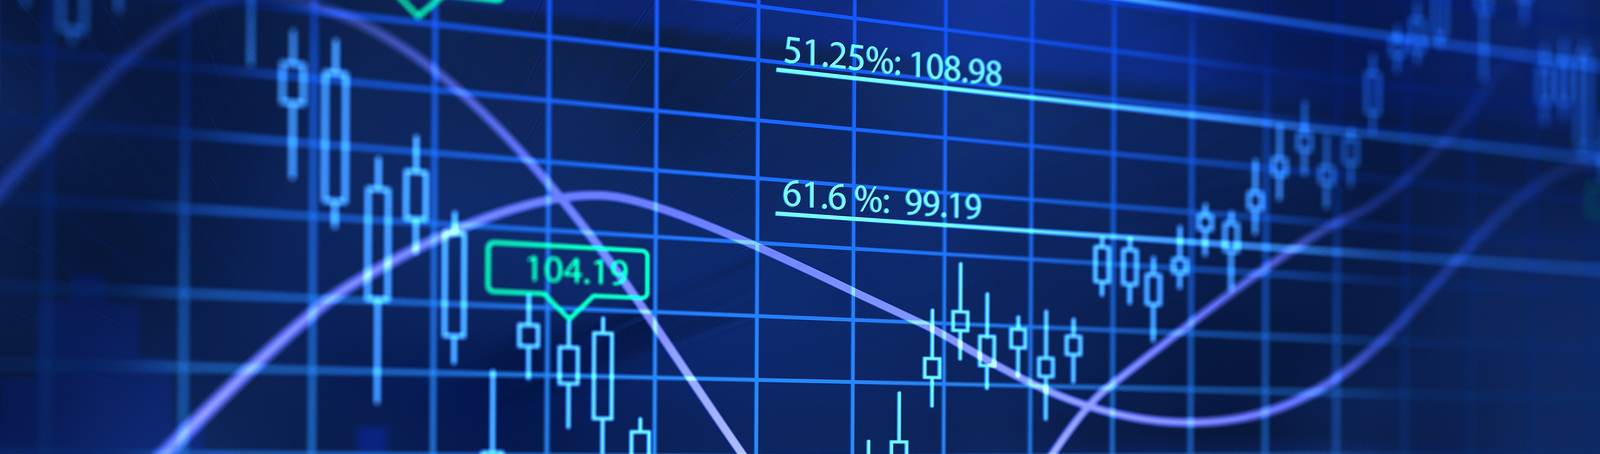 Day trading brokerage calculation